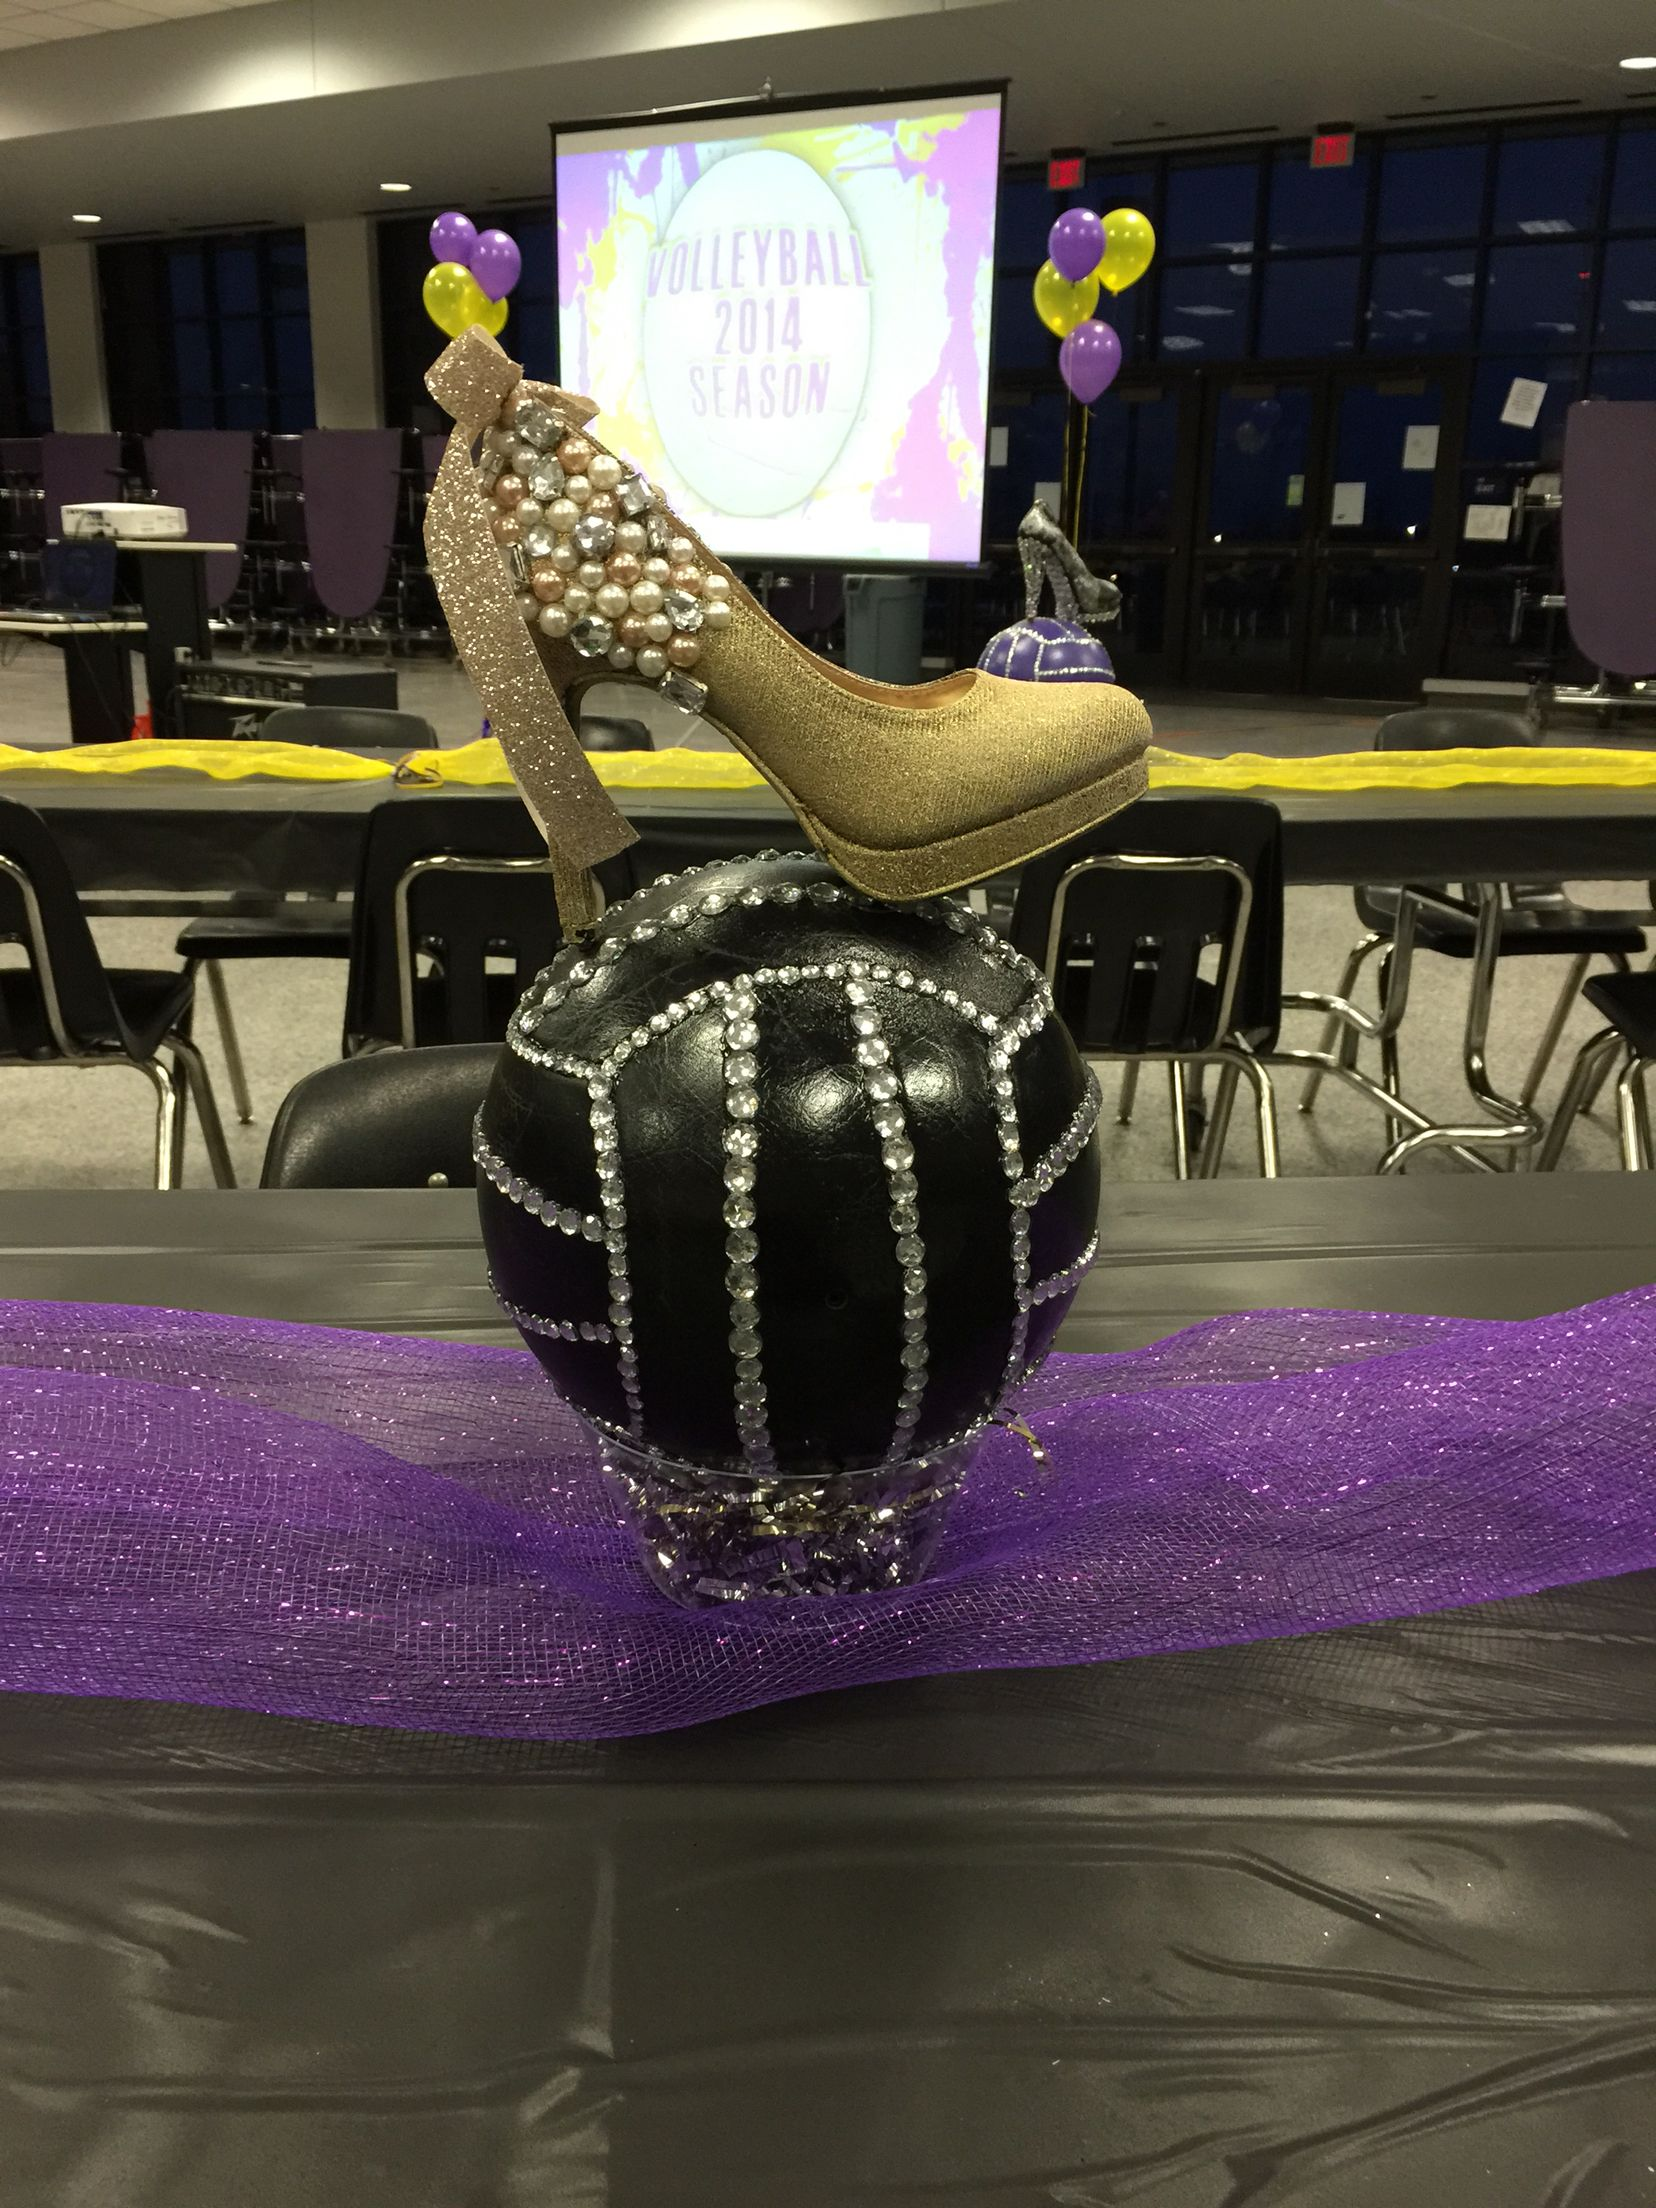 Volleyball Banquet Theme Hits To Heels Each Girl Decorated Her Own Shoe So They Could Have A Keepsake Volleyball Gifts Girl Decor Volleyball